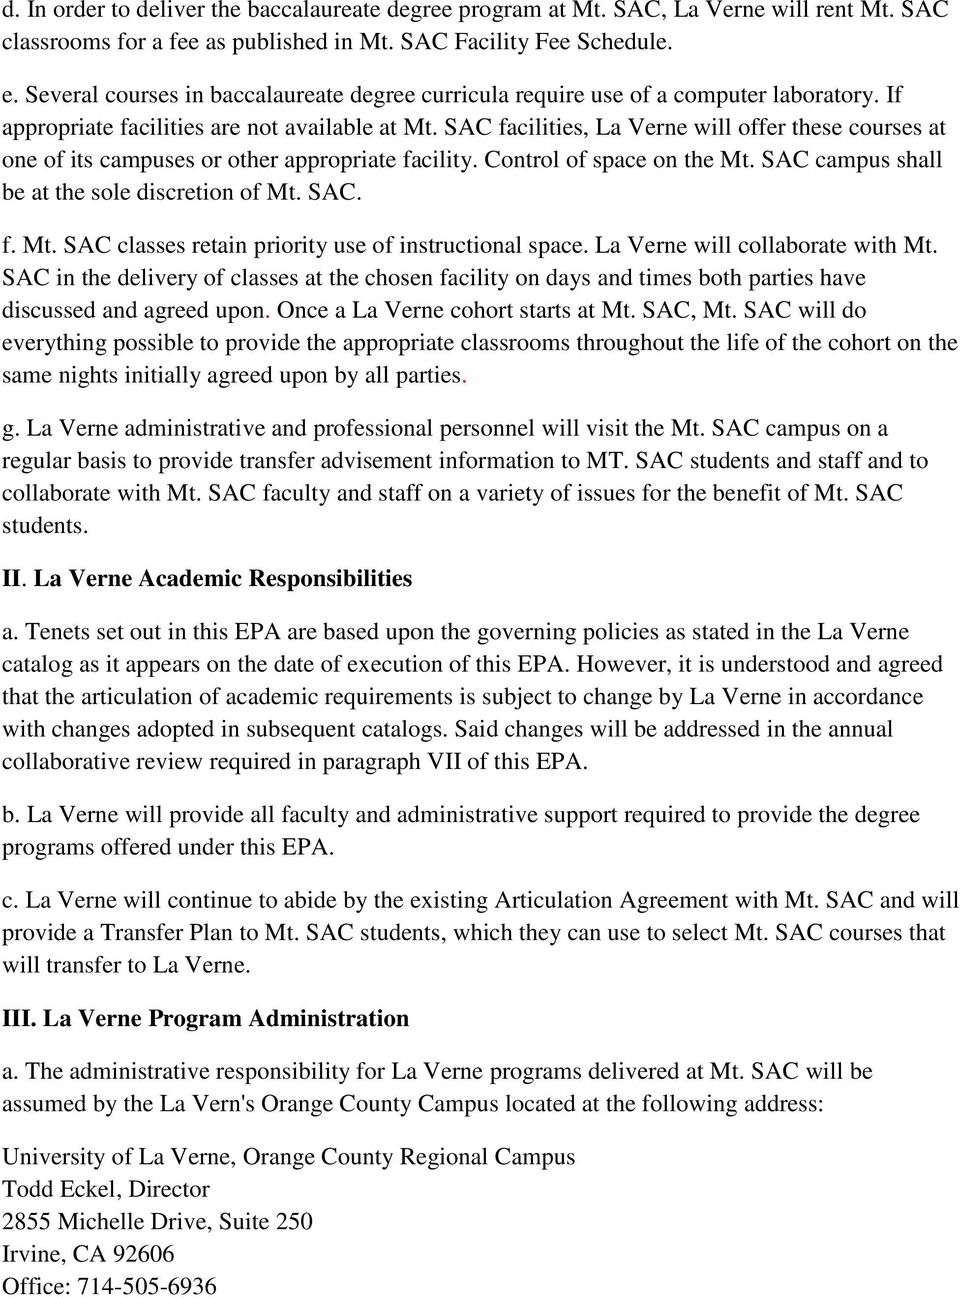 SAC facilities, La Verne will offer these courses at one of its campuses or other appropriate facility. Control of space on the Mt. SAC campus shall be at the sole discretion of Mt. SAC. f. Mt. SAC classes retain priority use of instructional space.